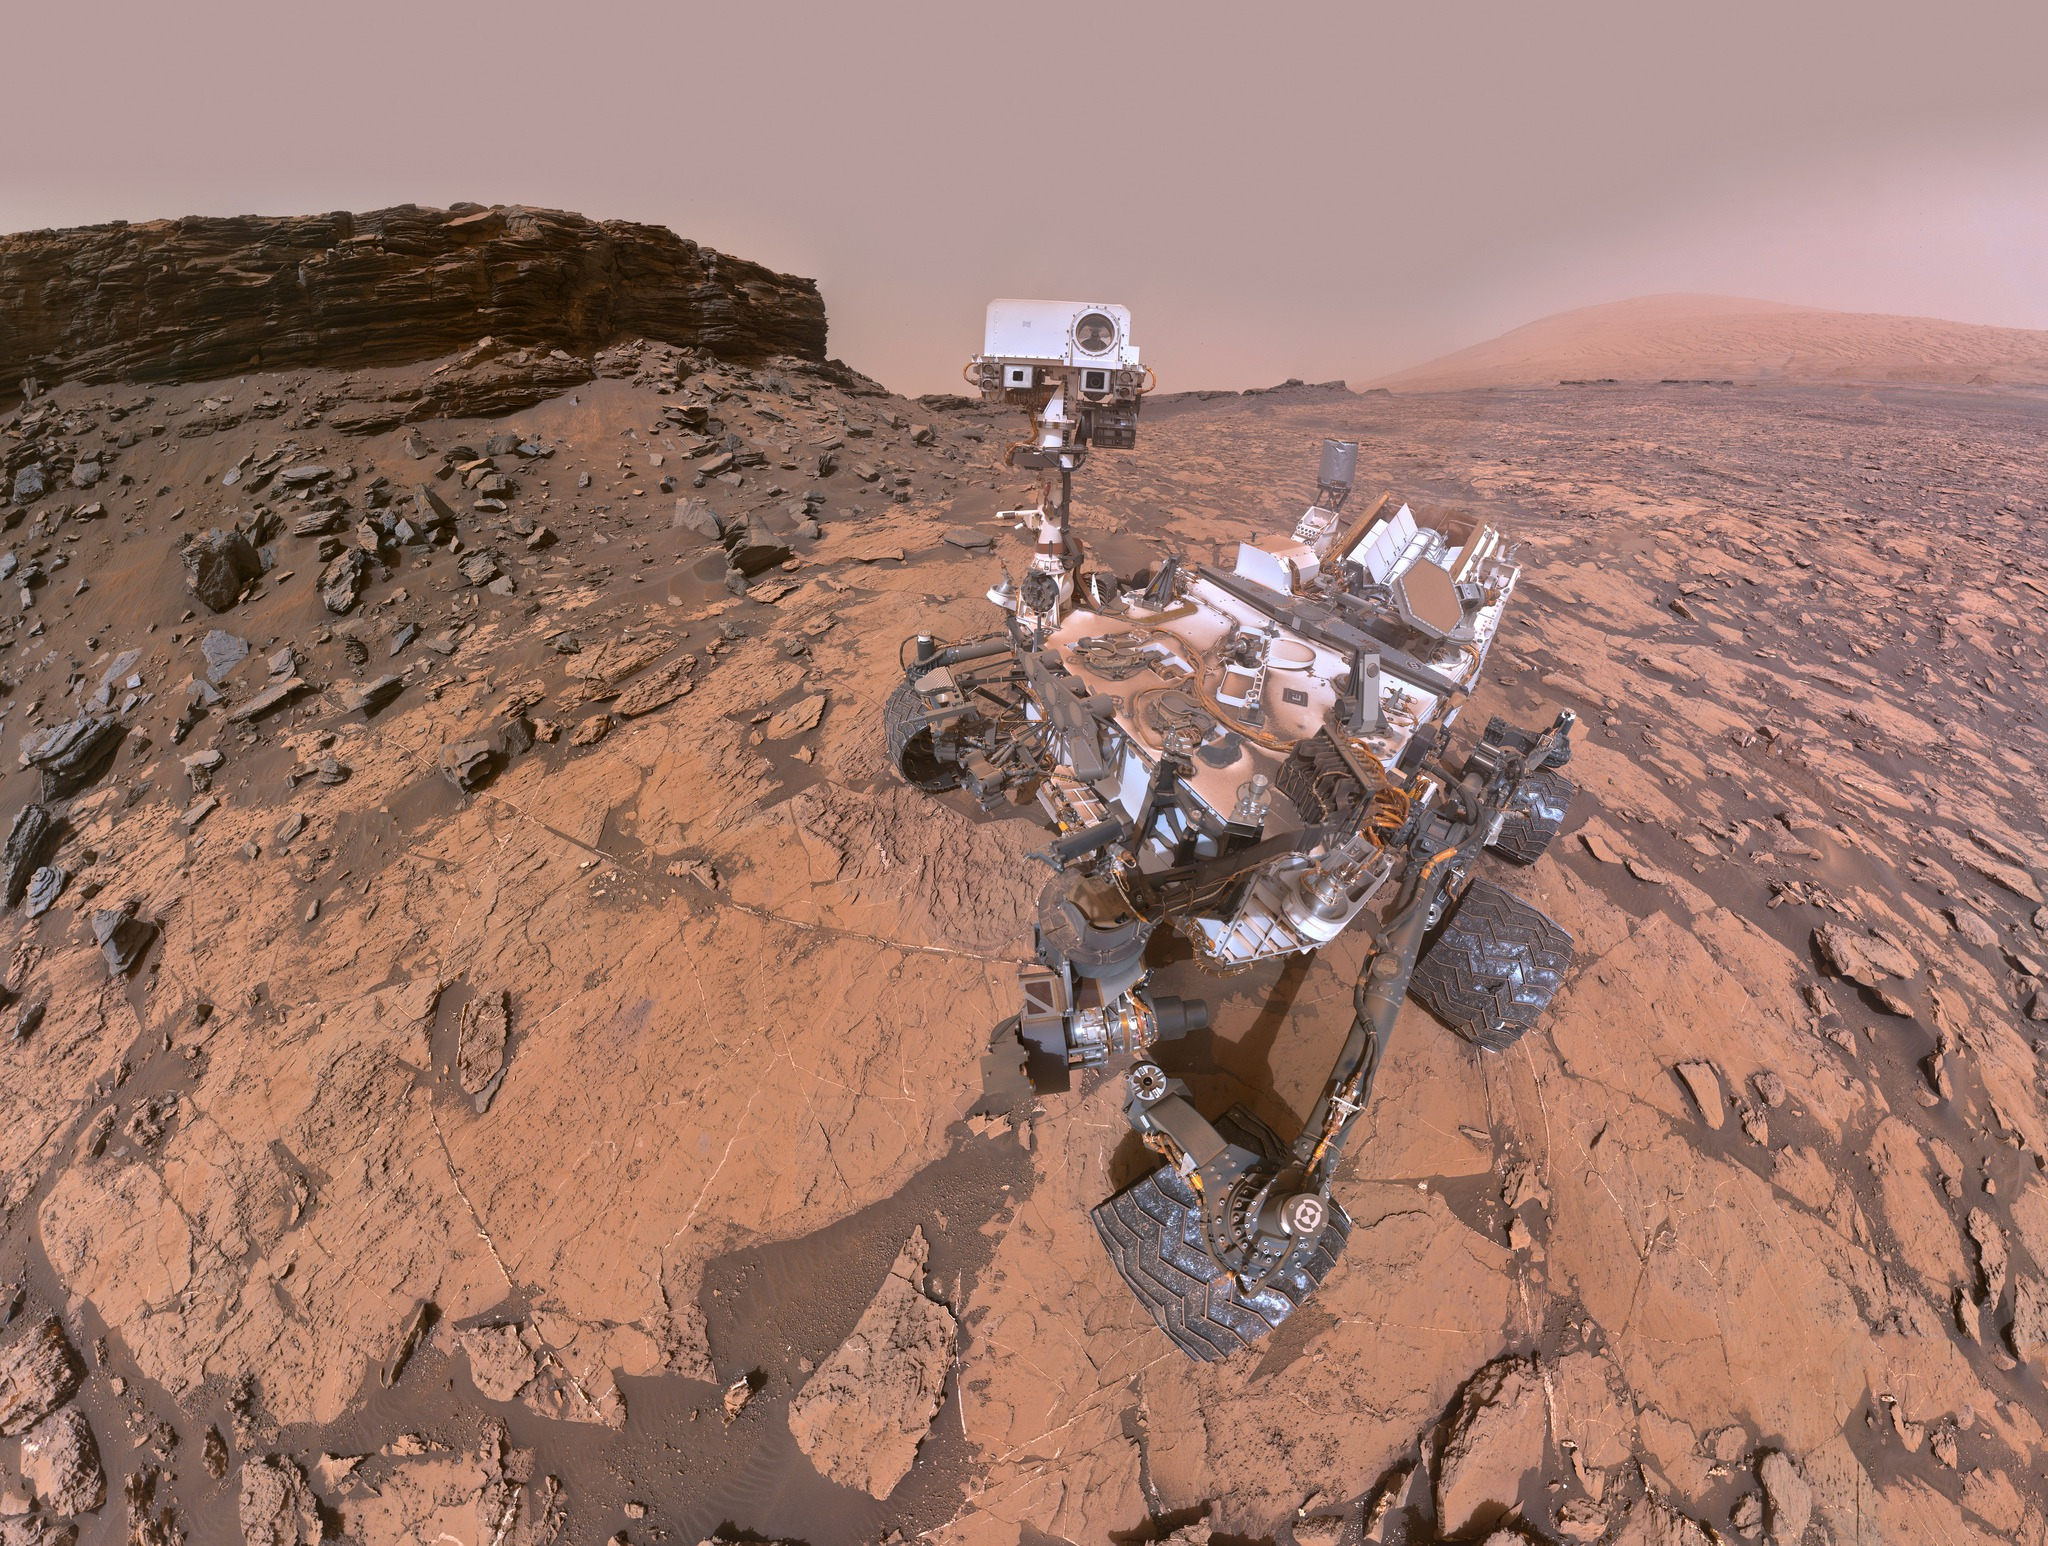 nasa curiosity rover pictures - HD2048×1546